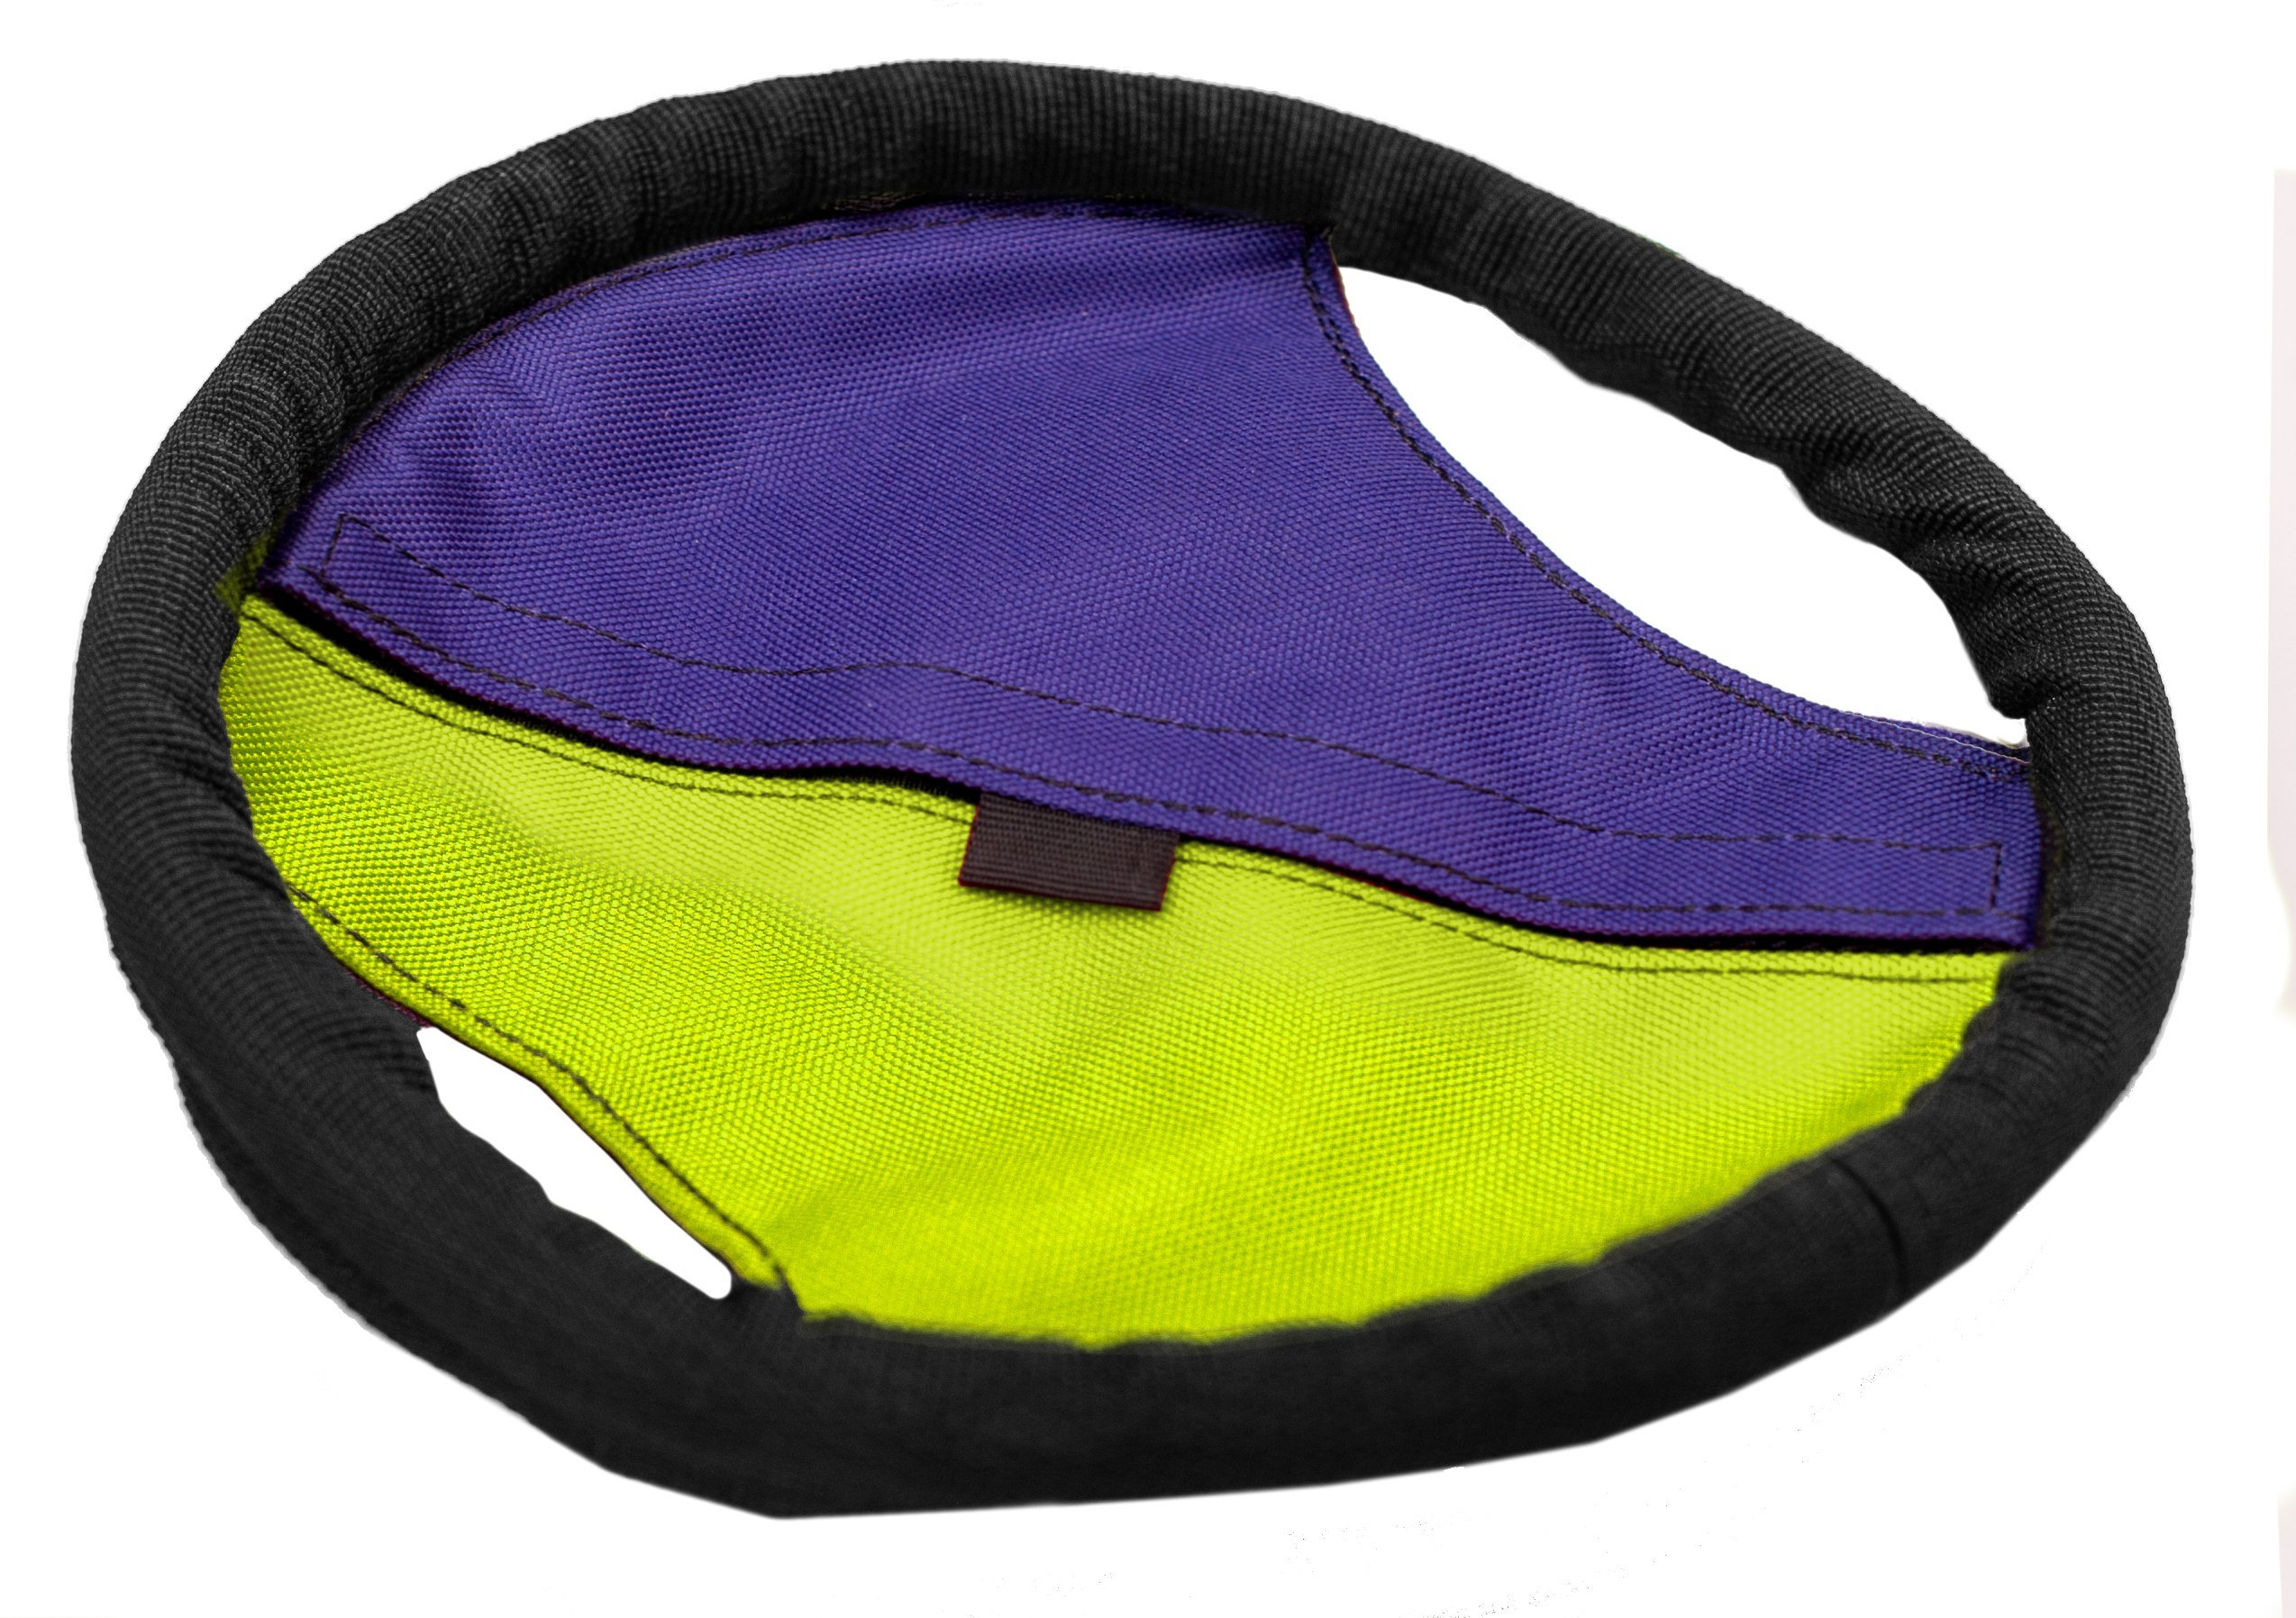 REDUCED PRICE! Flying Treat Tug Frisbee buy Directly from Manufacturer